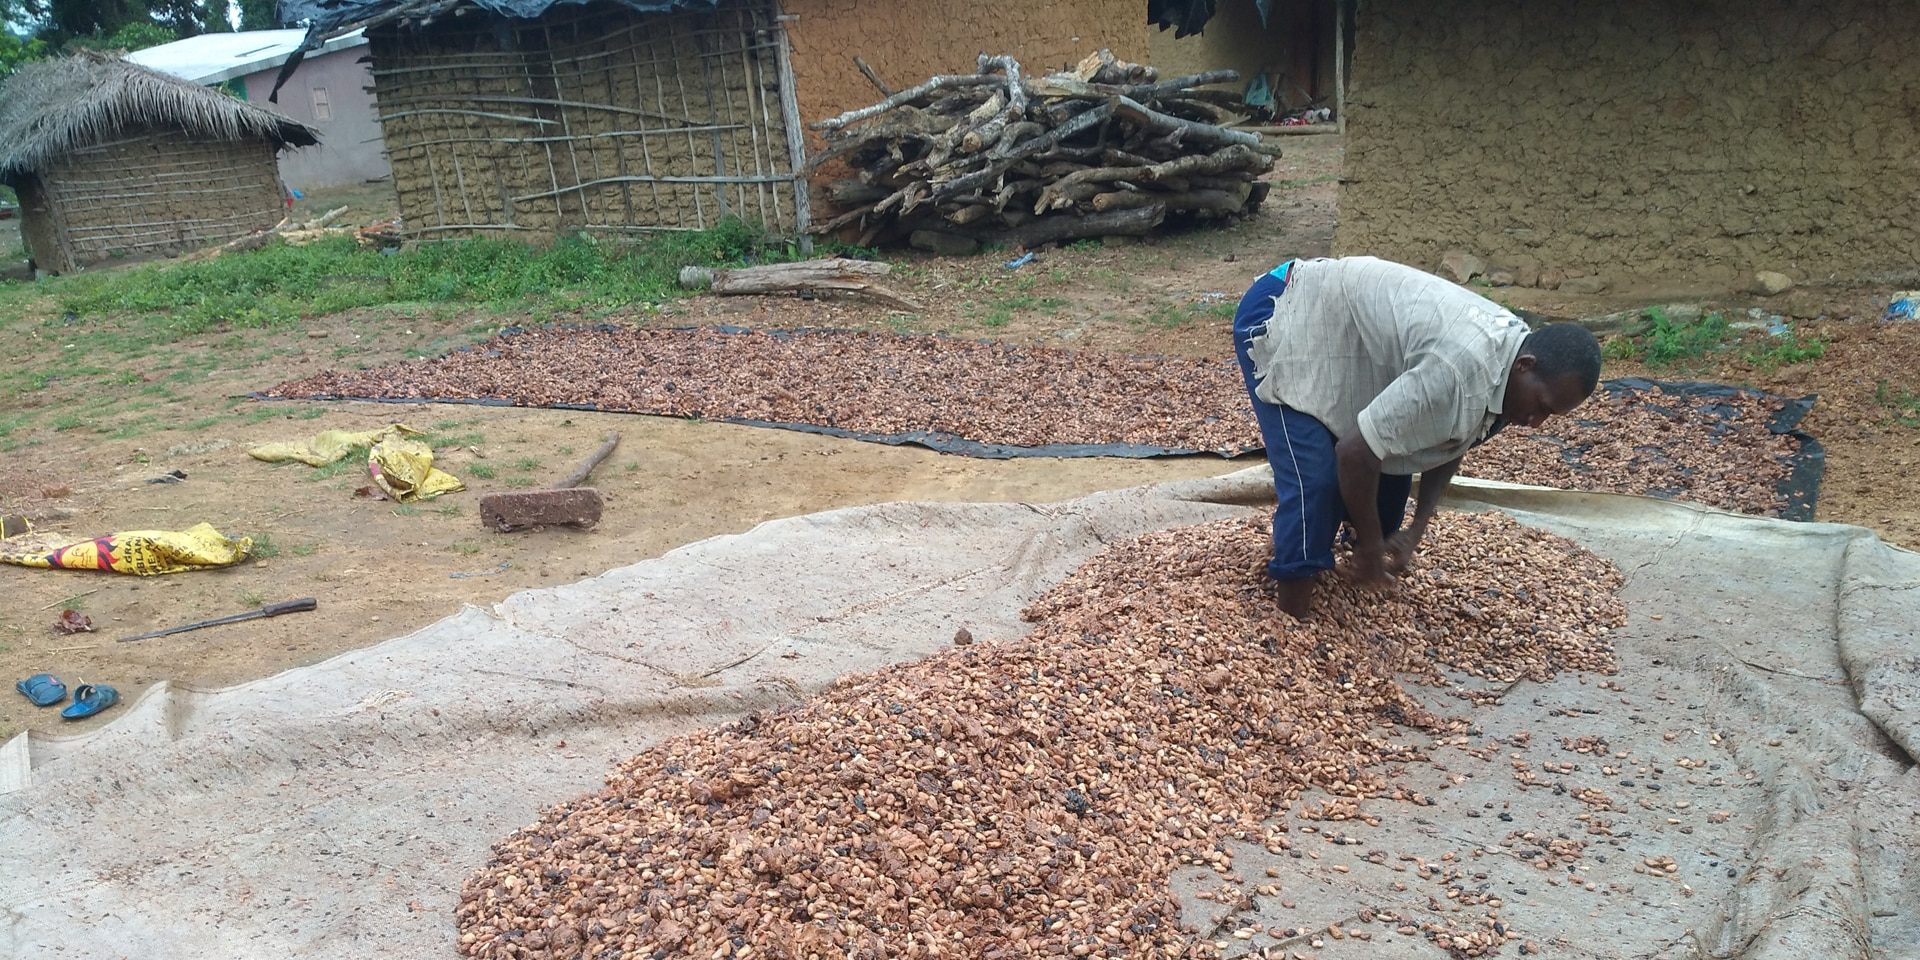 A cocoa farmer spreads cocoa beans on a plastic sheet to dry.